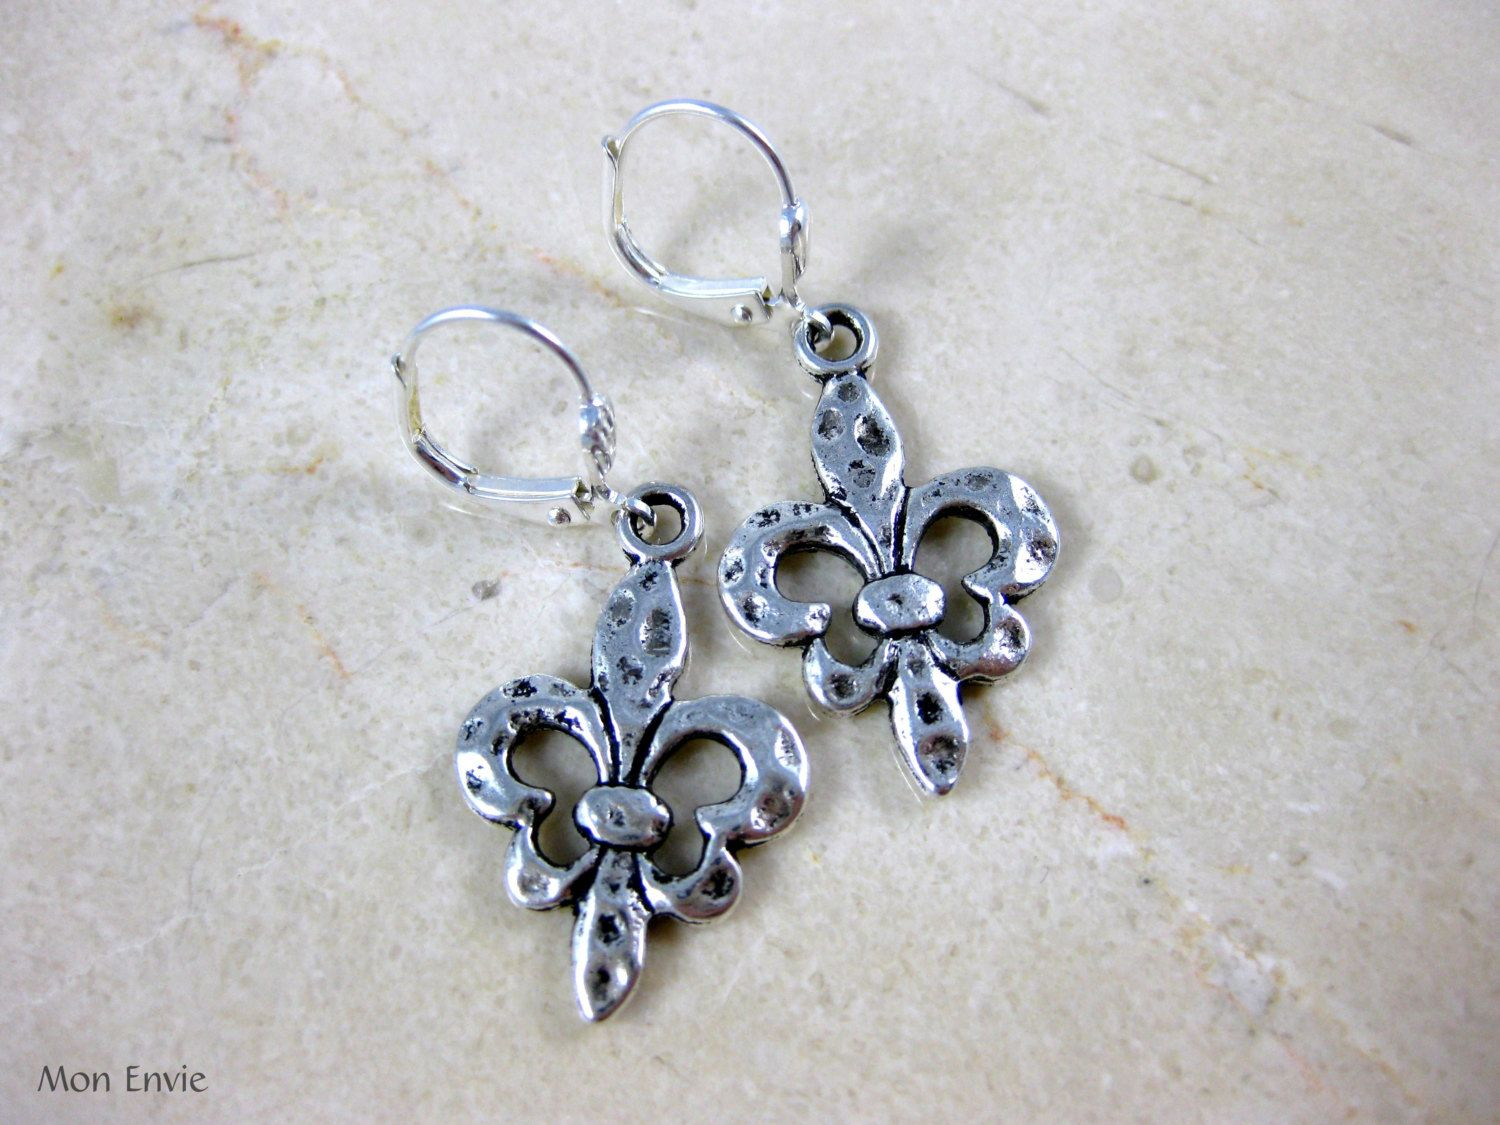 Antiqued Silver Finish Pewter FleurdeLis Dangle Earrings, Hammered Textured Finish. $5.00, via Etsy.